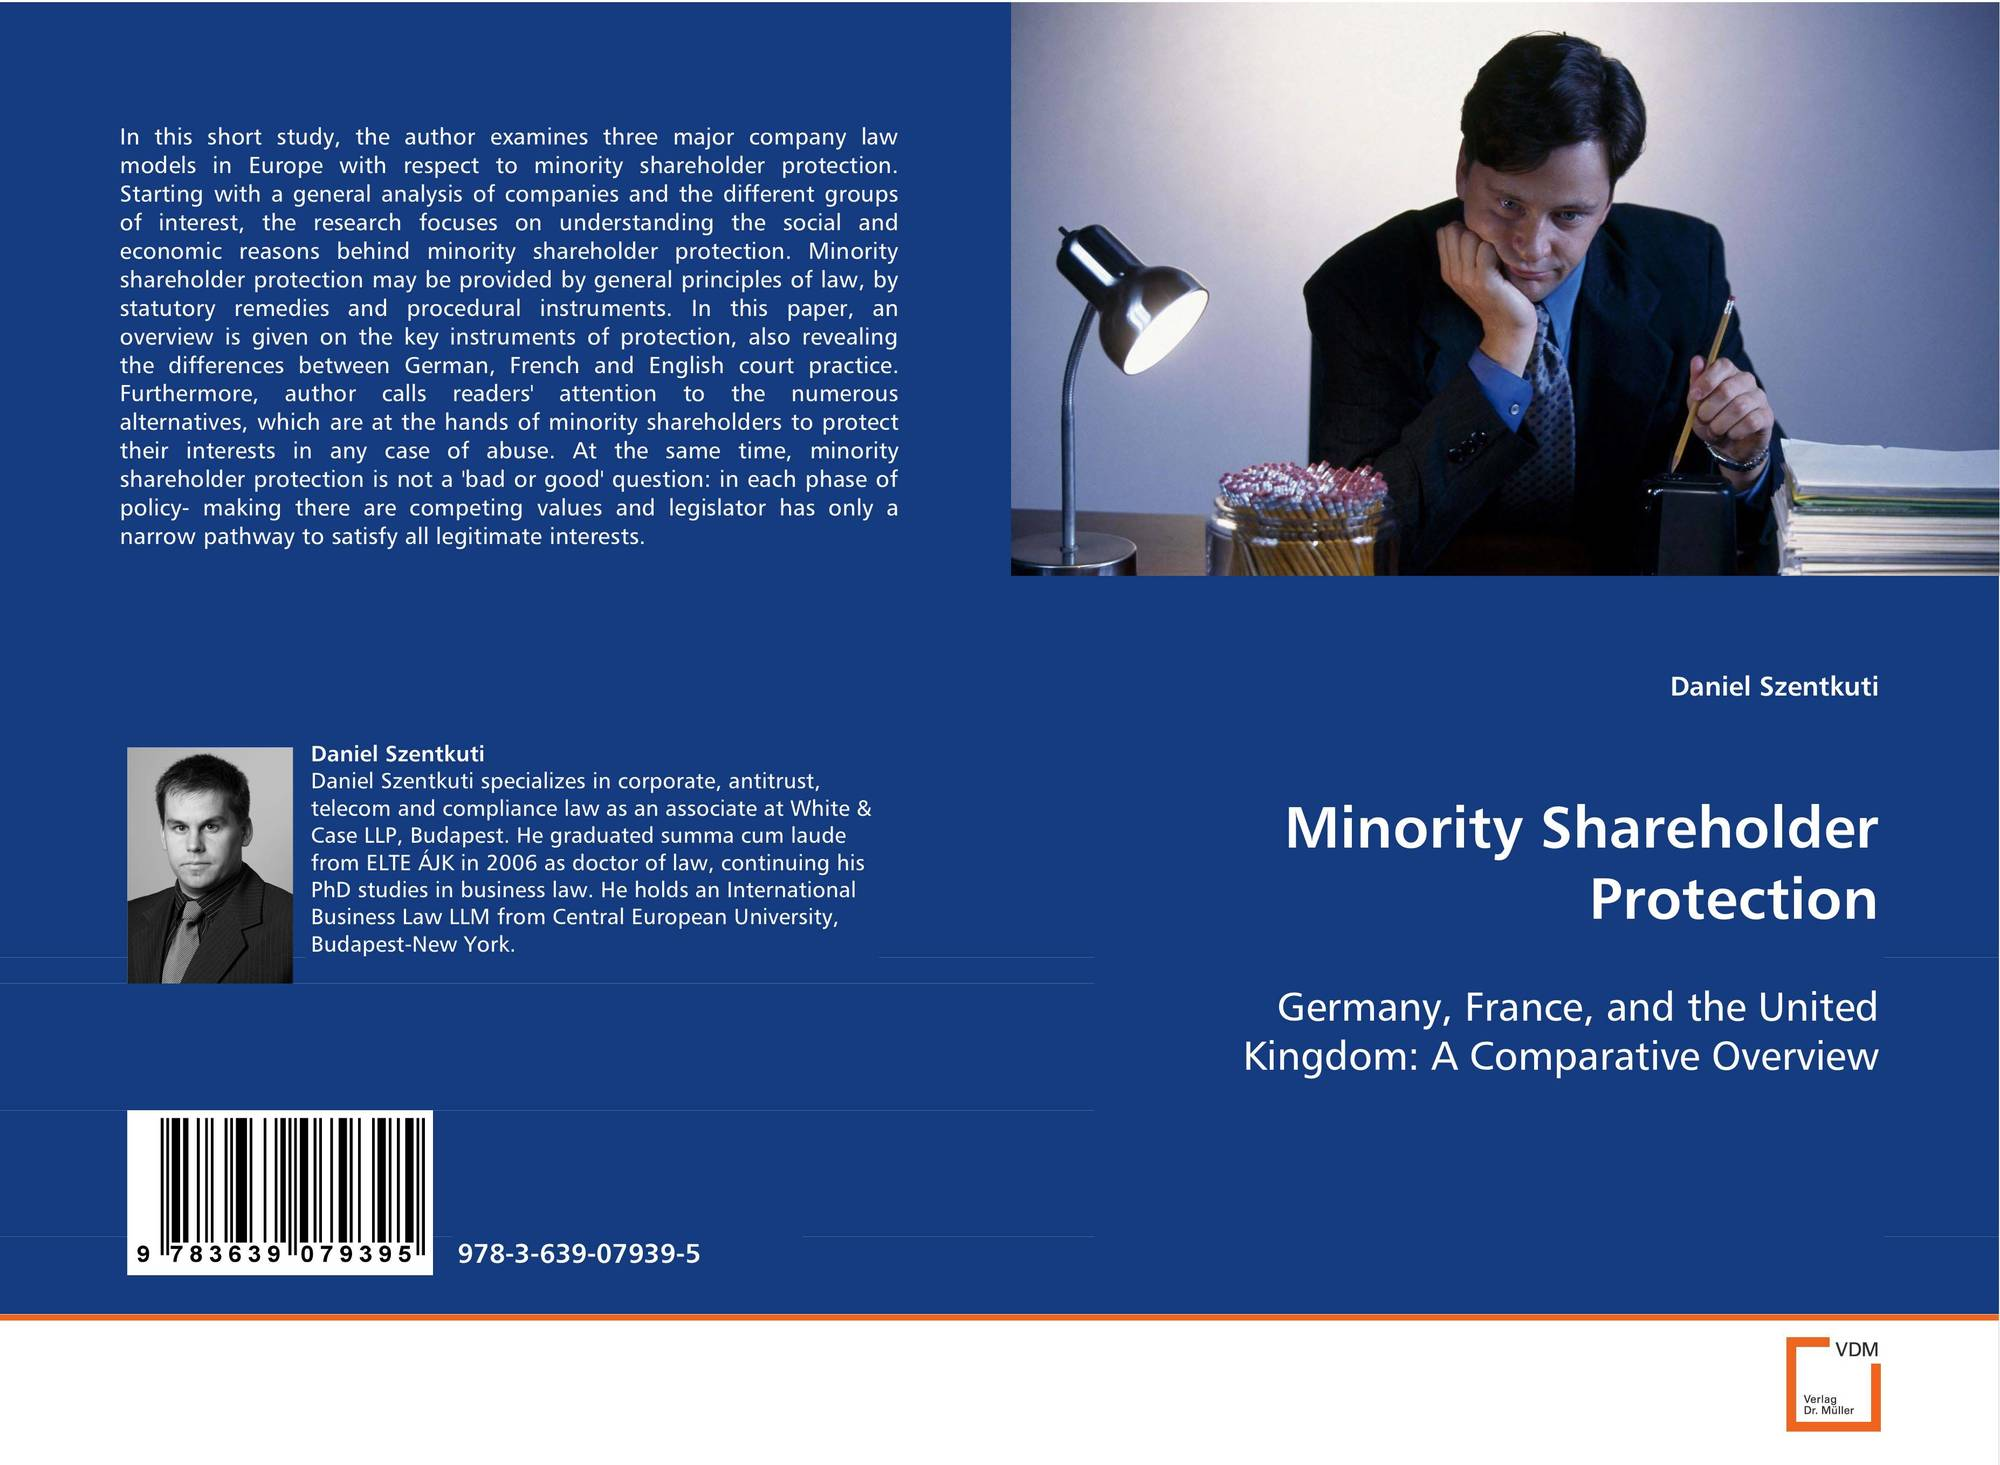 minority shareholder rights case Deciding that shareholder oppression claims are equitable claims, the court concluded that the majority shareholders contesting the claim had a right to have the case resolved by a court of equity.